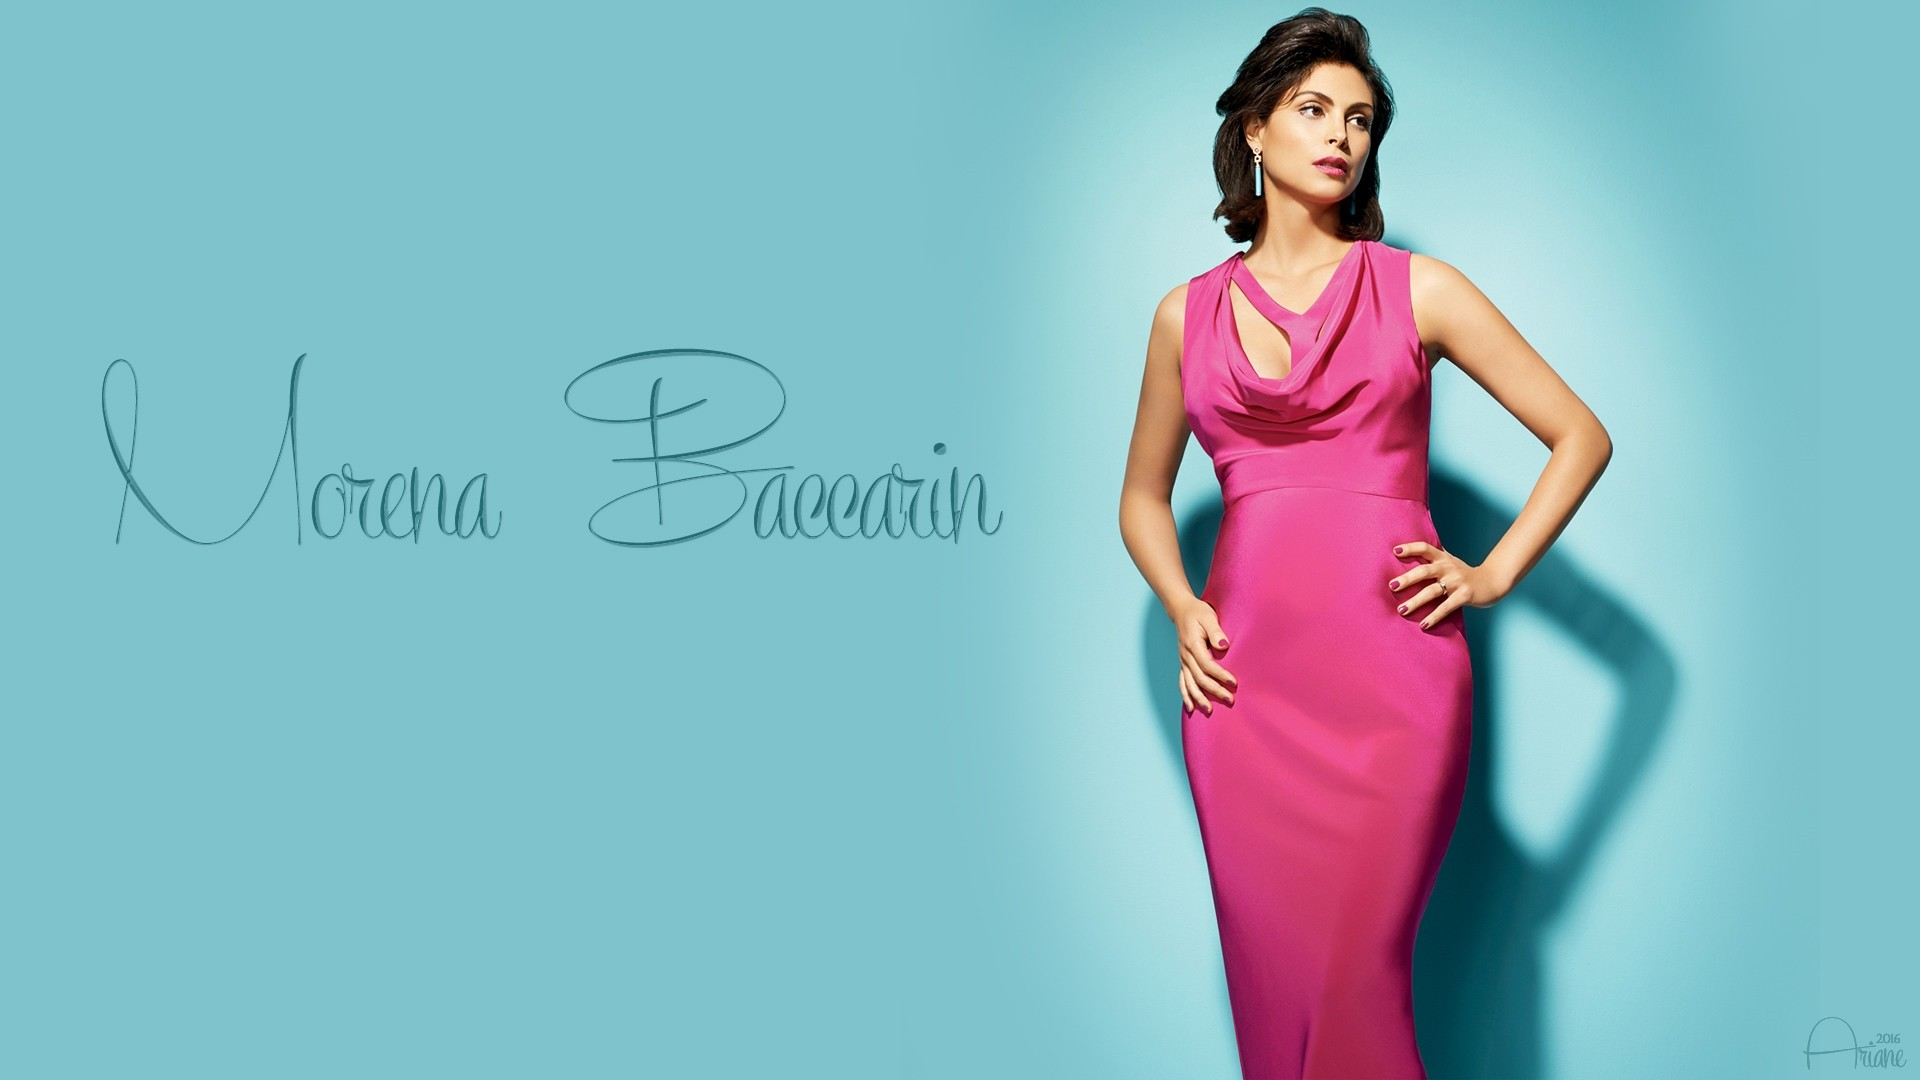 Morena Baccarin Wallpaper for pc